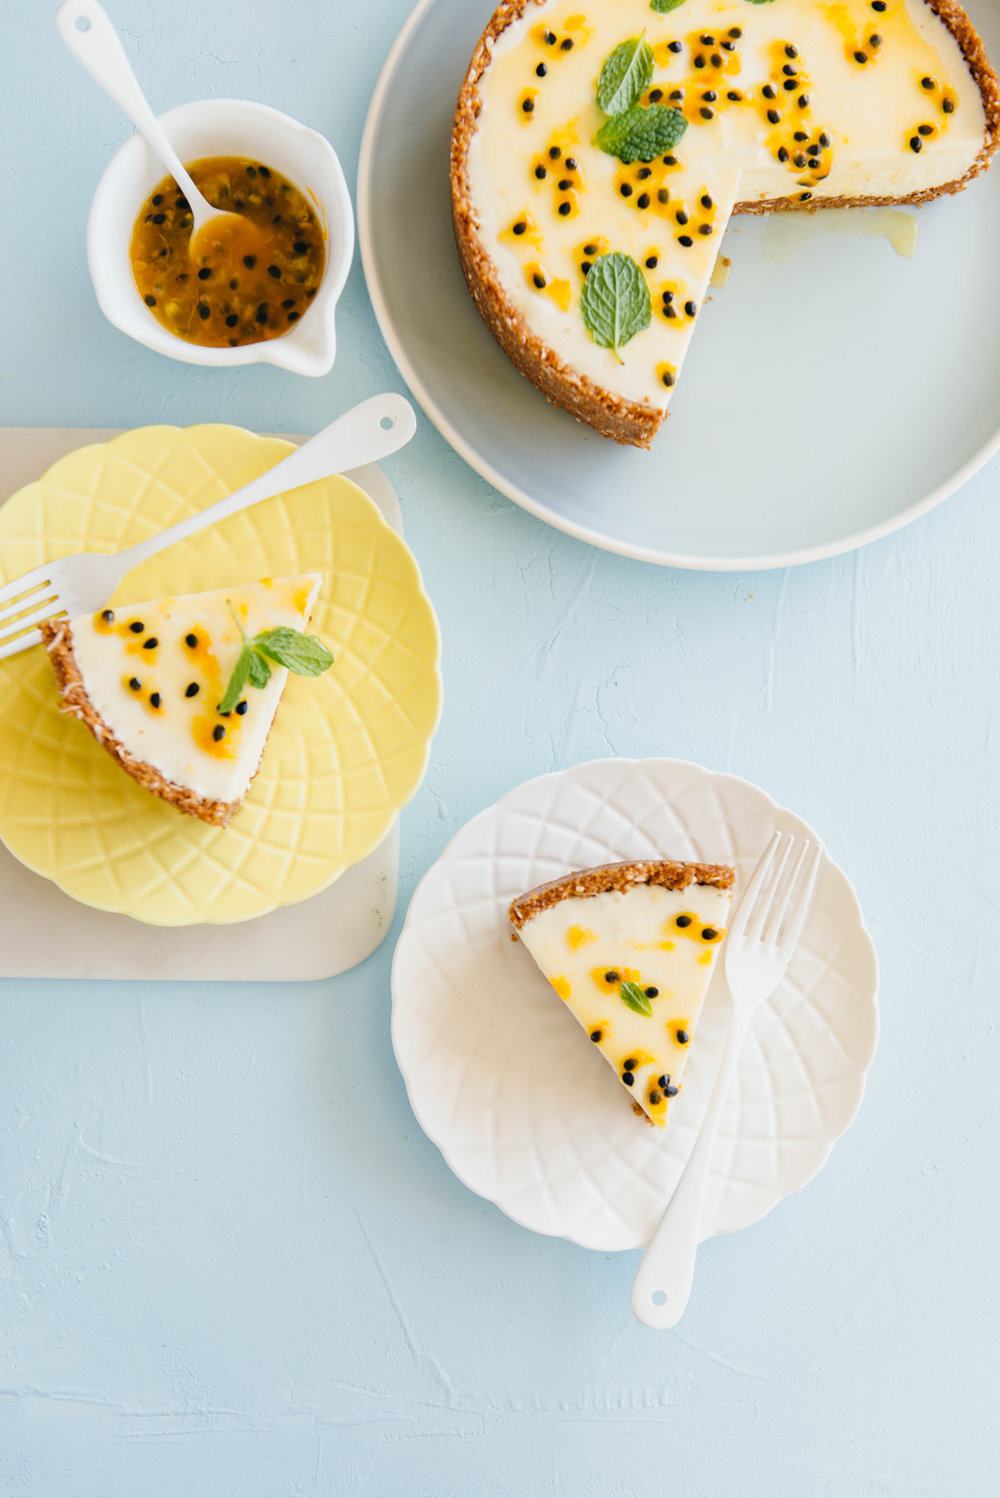 White Chocolate, Lime And Passion Fruit Cheesecake Recipe White Chocolate, Lime And Passion Fruit Cheesecake Recipe new foto